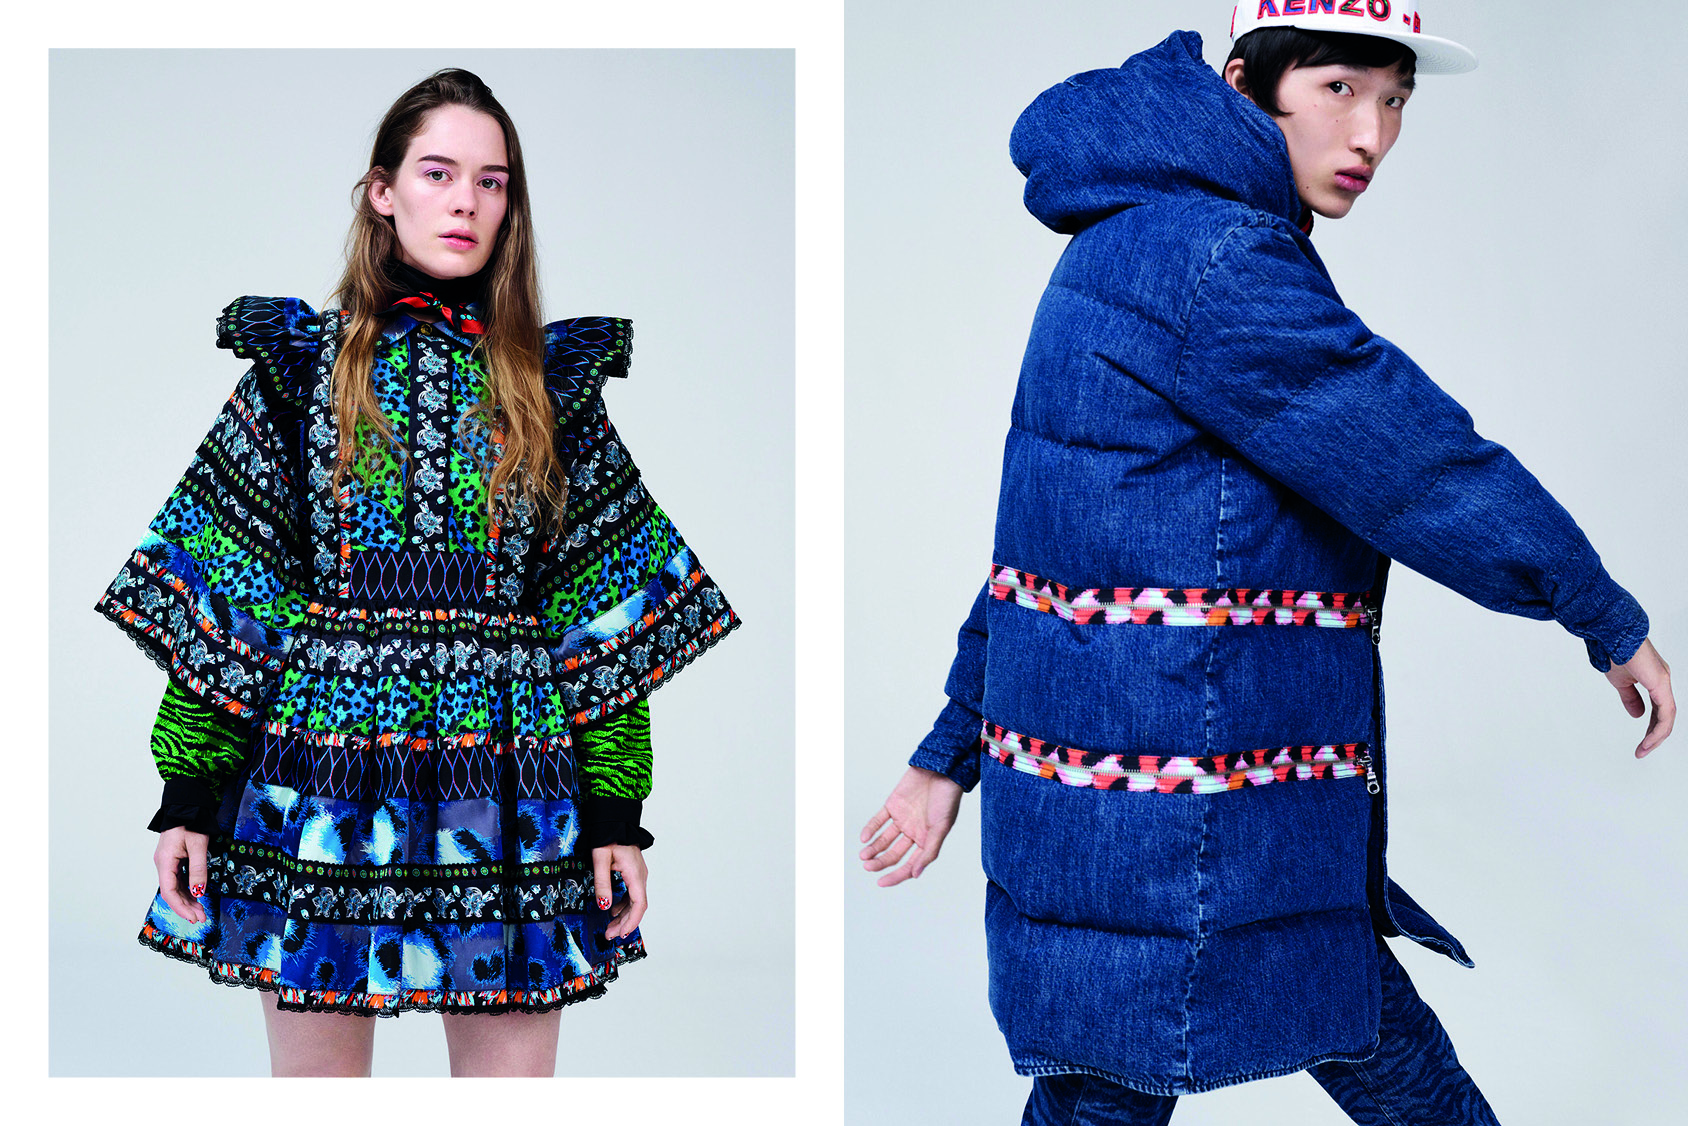 oktb3-16-e-al-inside-kenzo-story-behind-the-collection